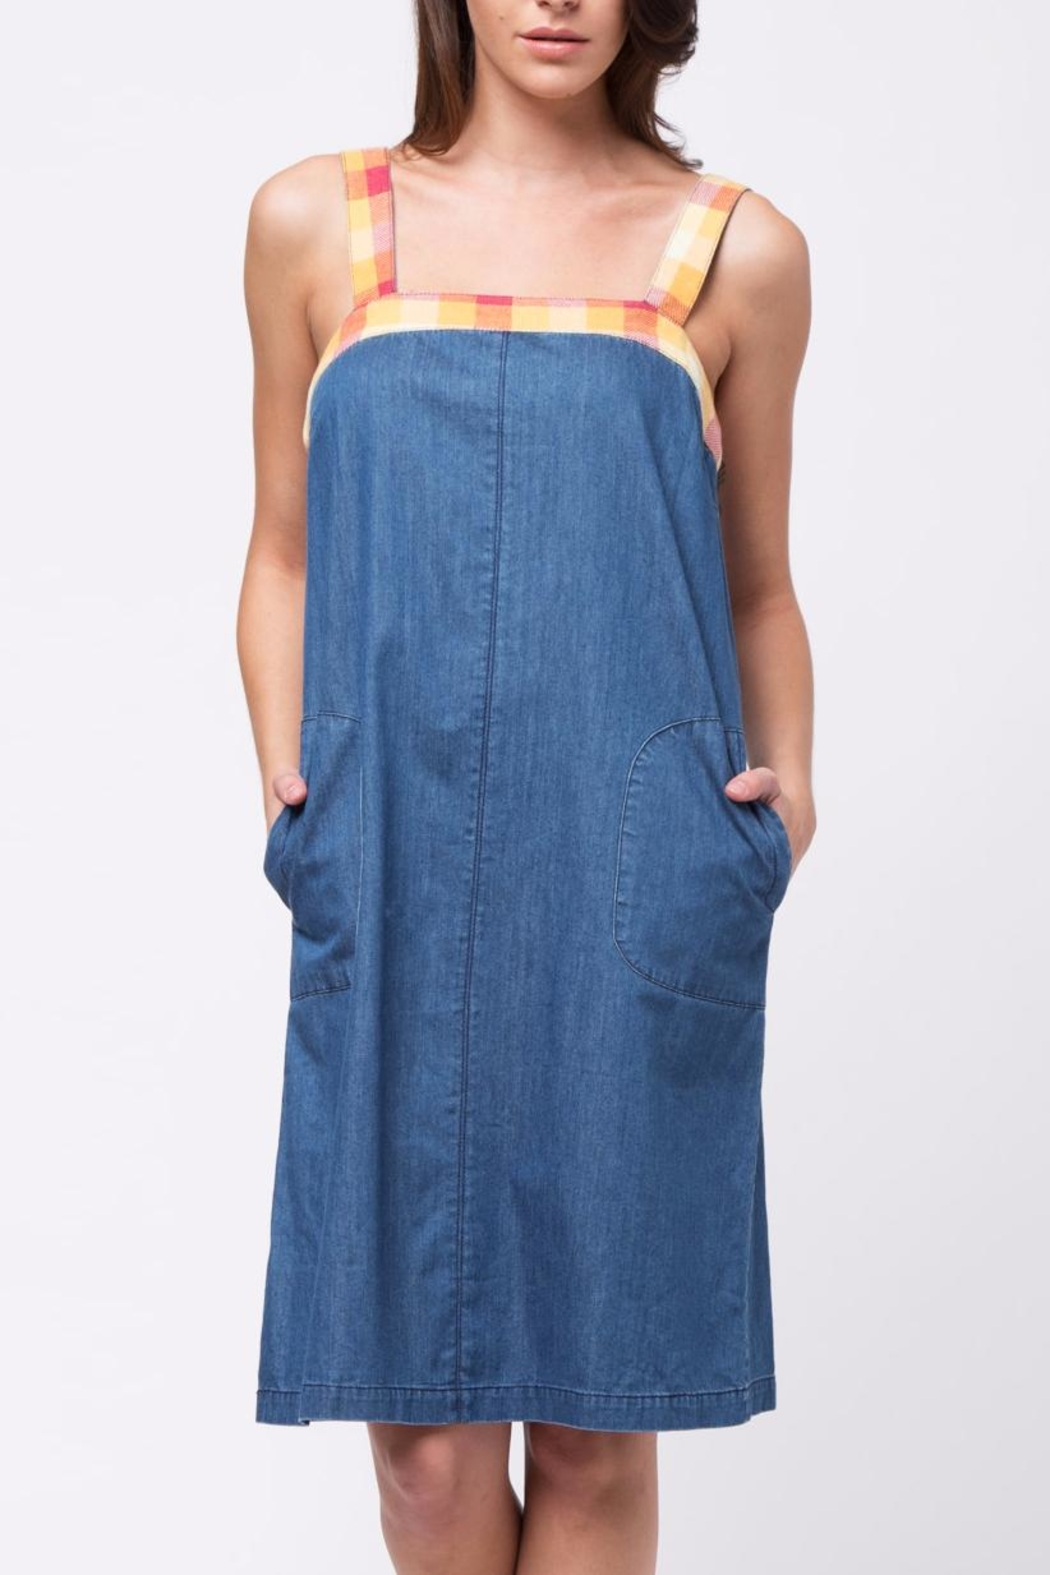 Movint Contrast Detailed Denim Dress - Main Image